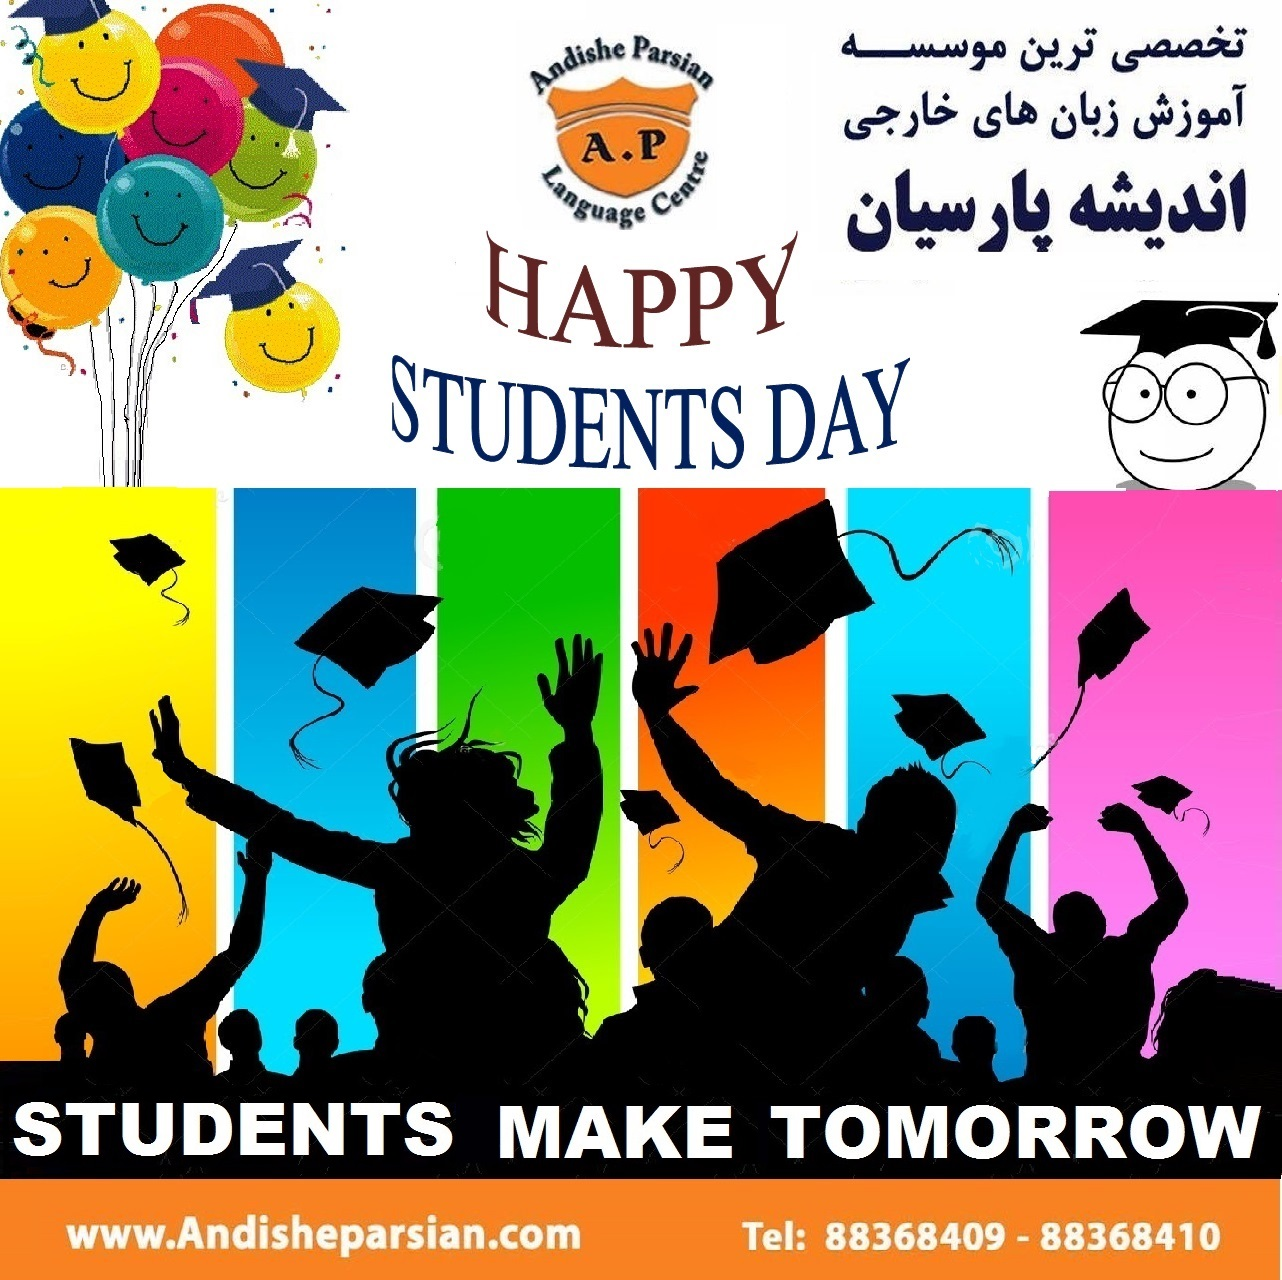 When is Students Day